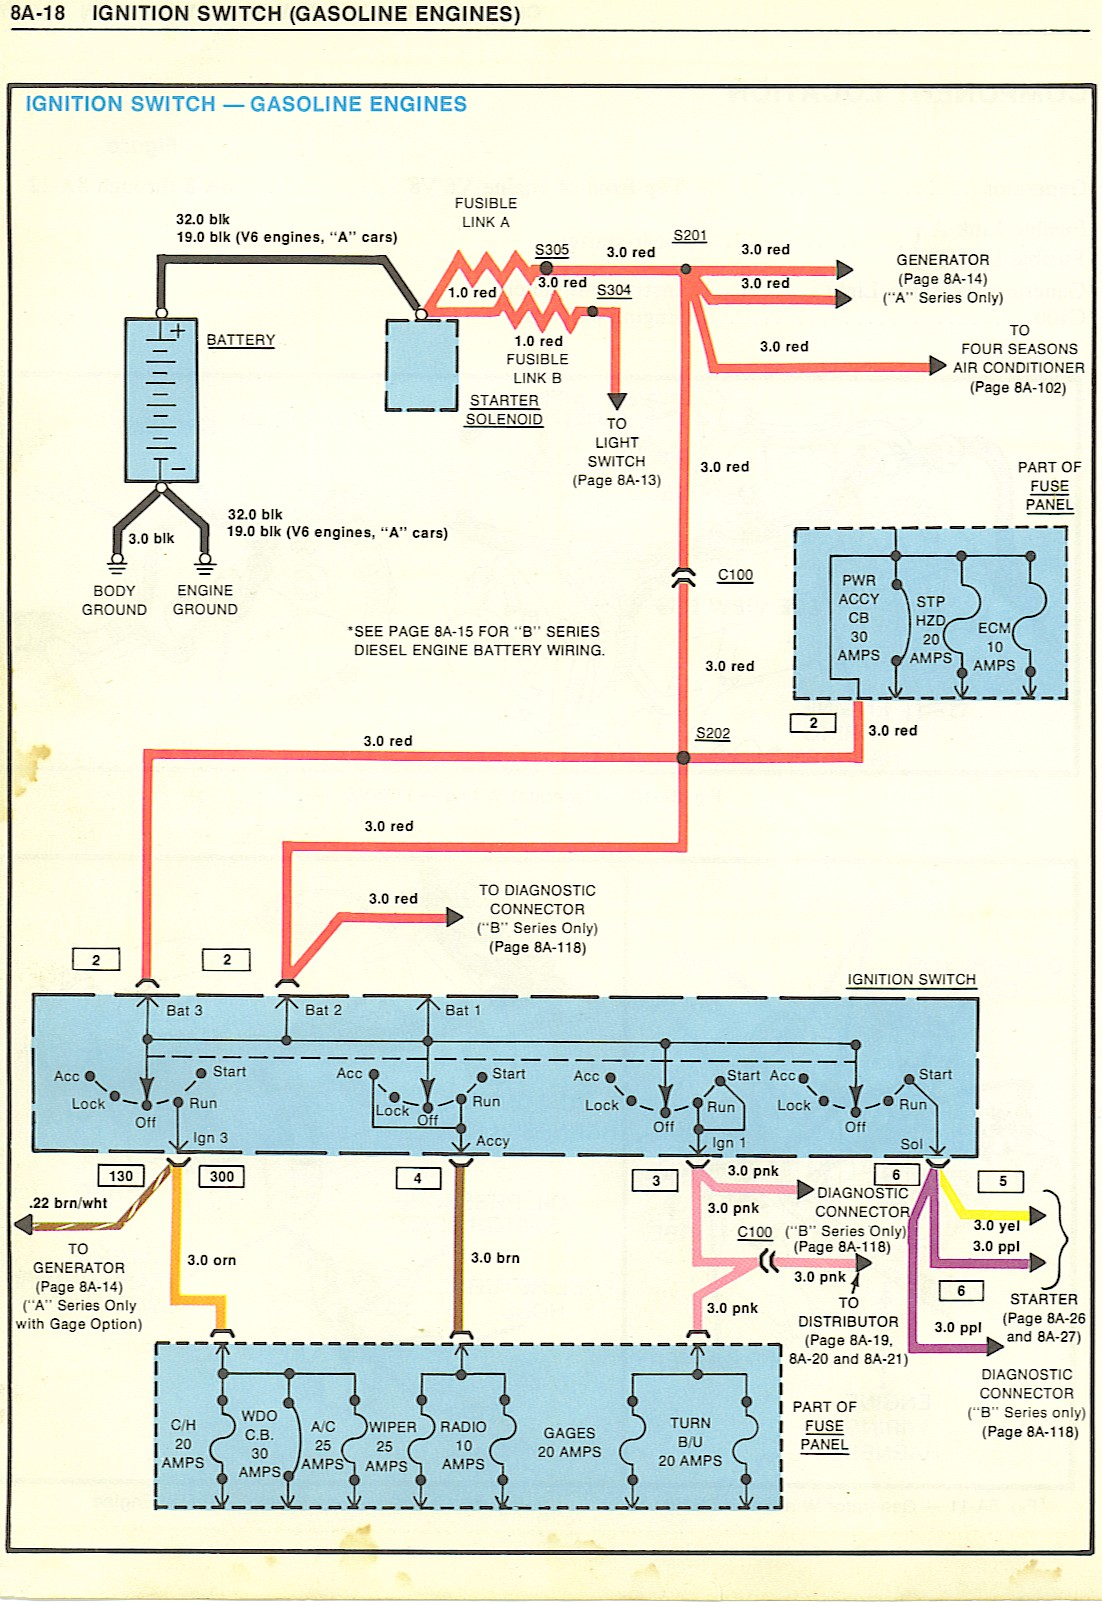 Wiring Diagram Ignition Switch : Wiring diagram for chevelle get free image about